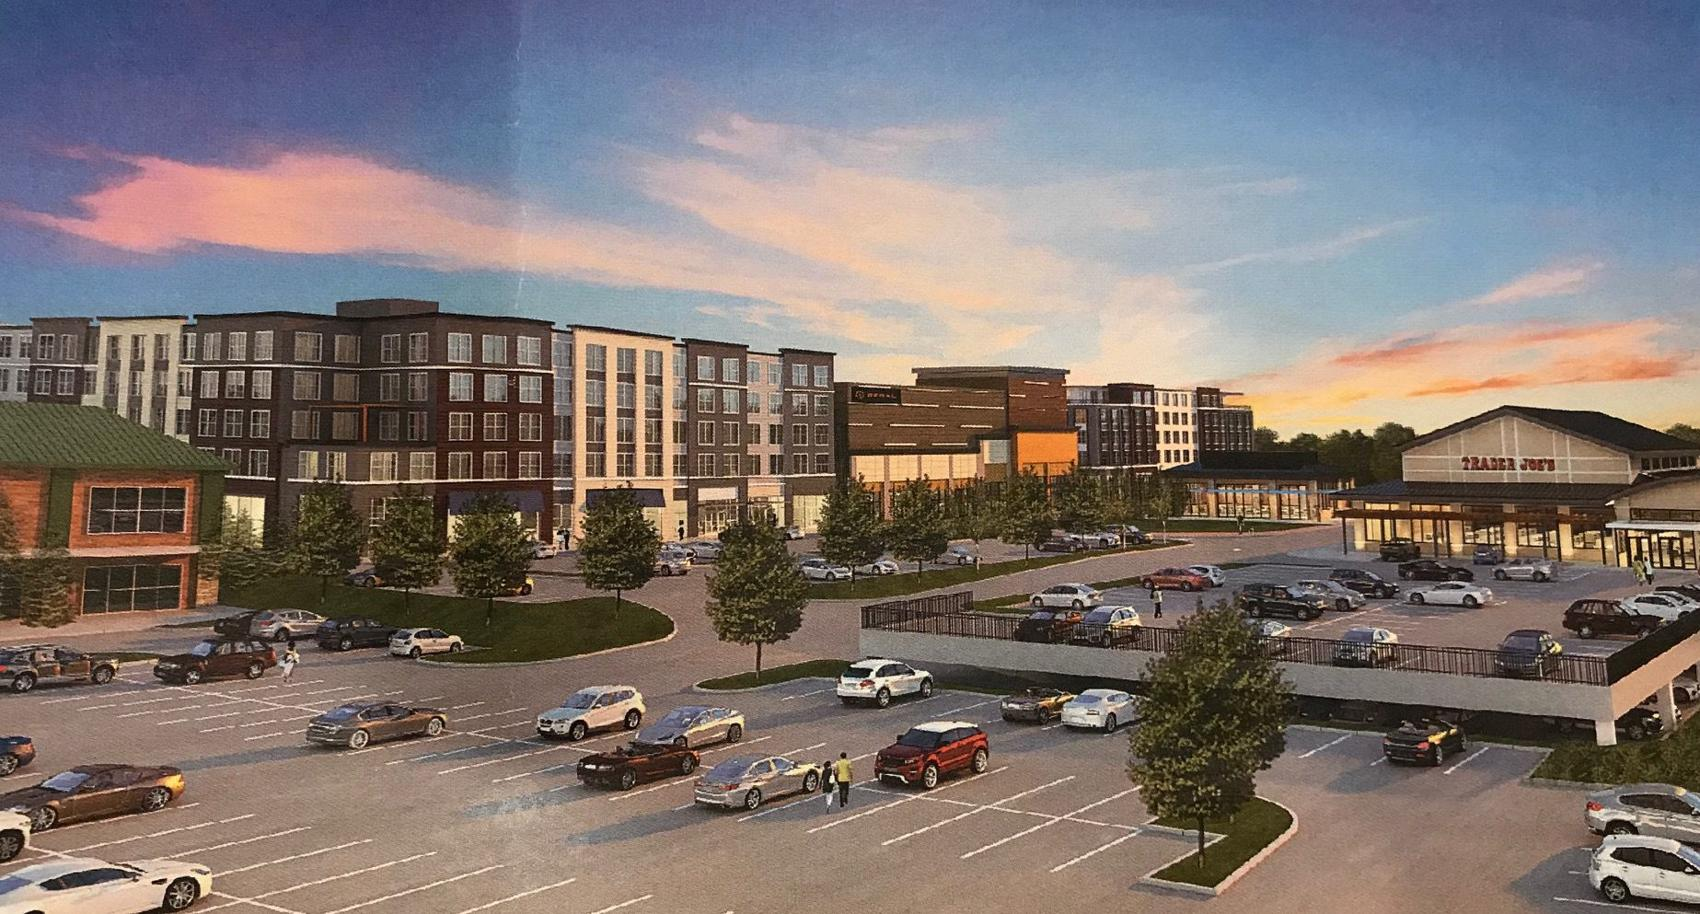 Rendering of Market and Main Trader Joe's and Parking Lot